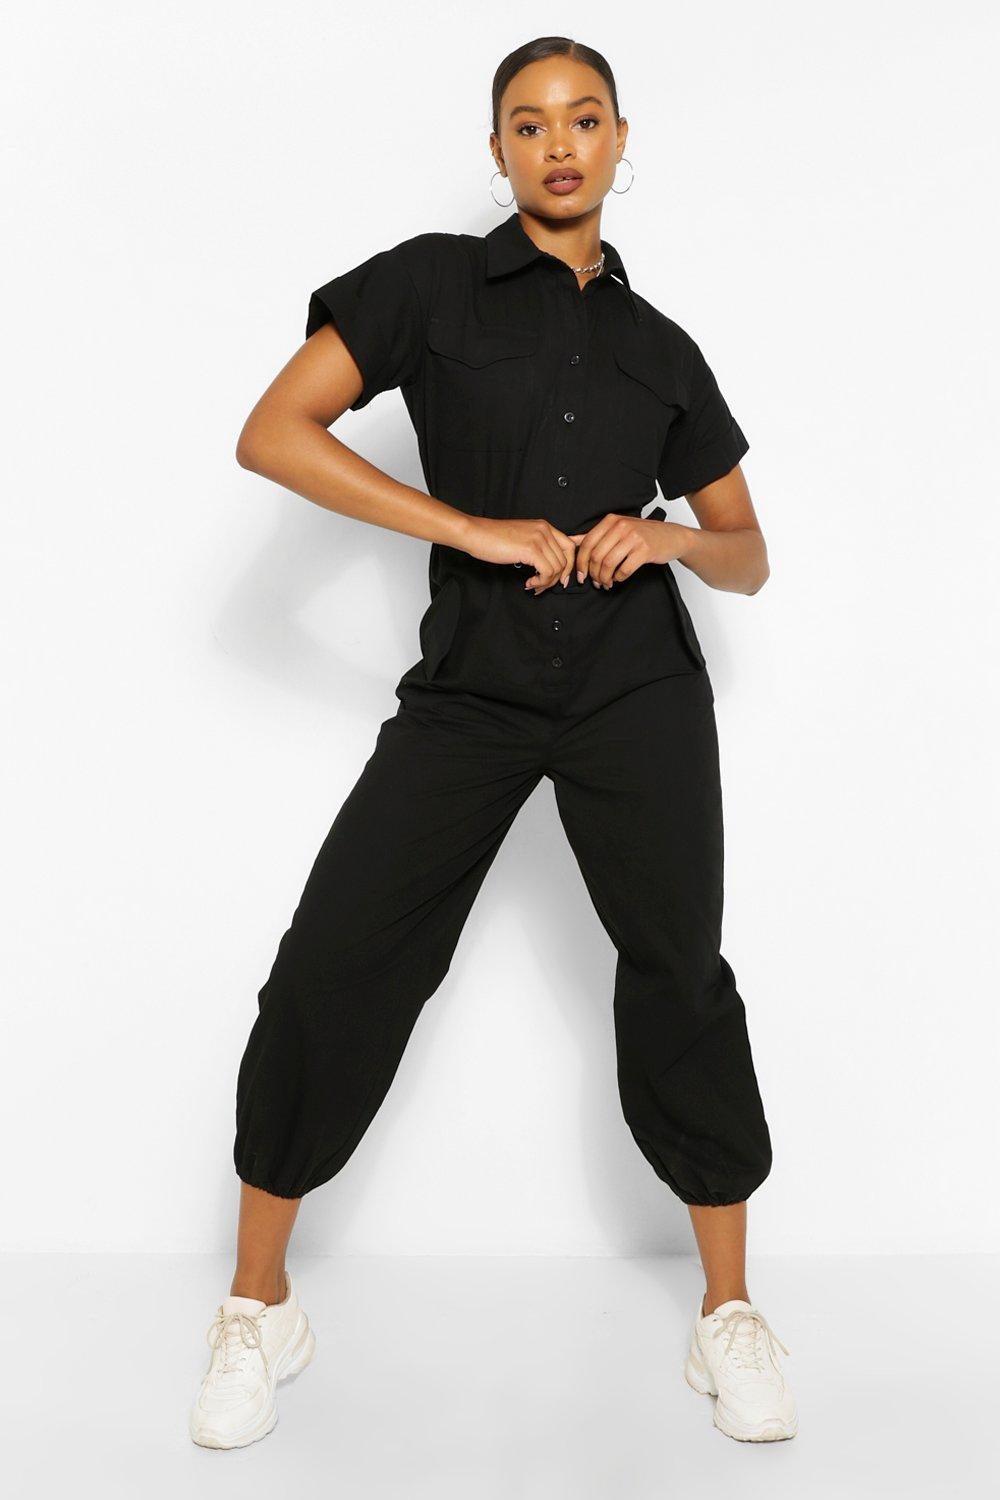 1980s Clothing, Fashion | 80s Style Clothes Womens Woven Turn Up Cuff Belted Jumpsuit - Black - 12 $27.00 AT vintagedancer.com